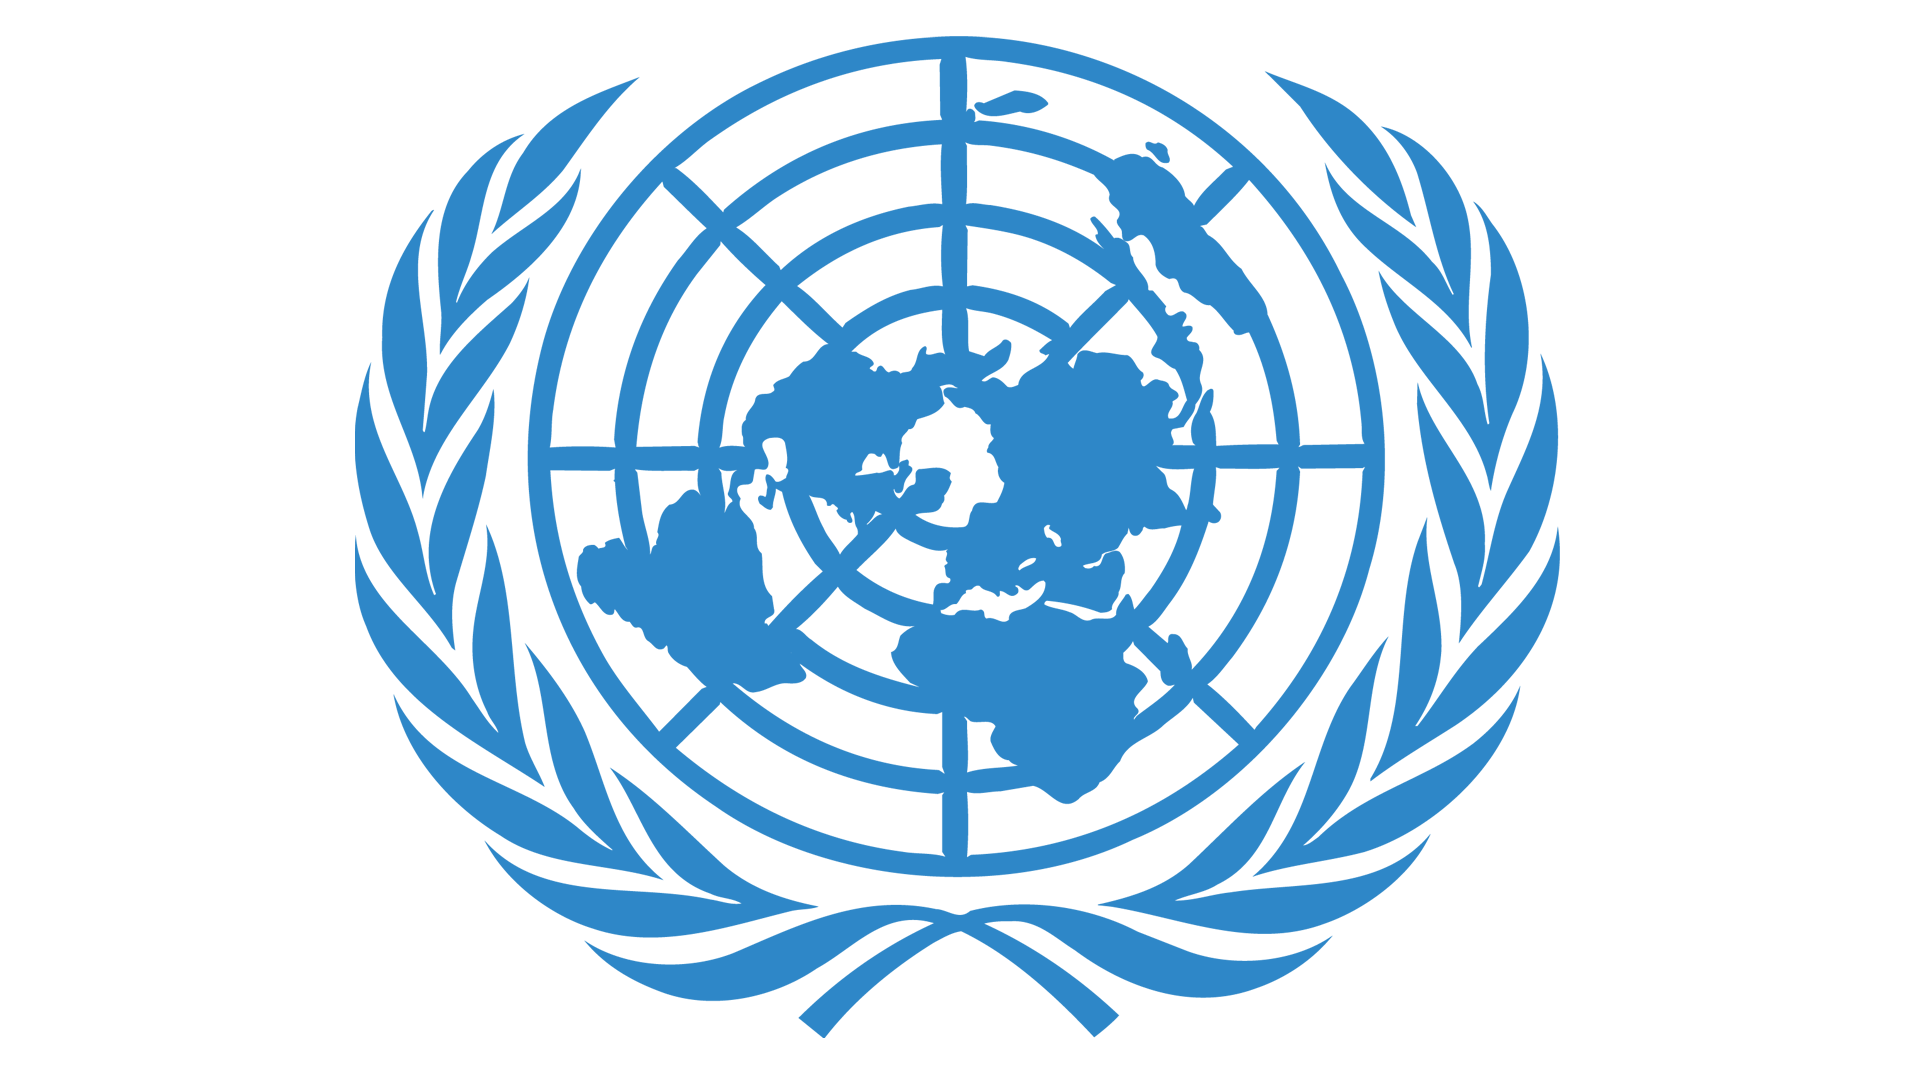 Meaning United Nations logo and symbol.